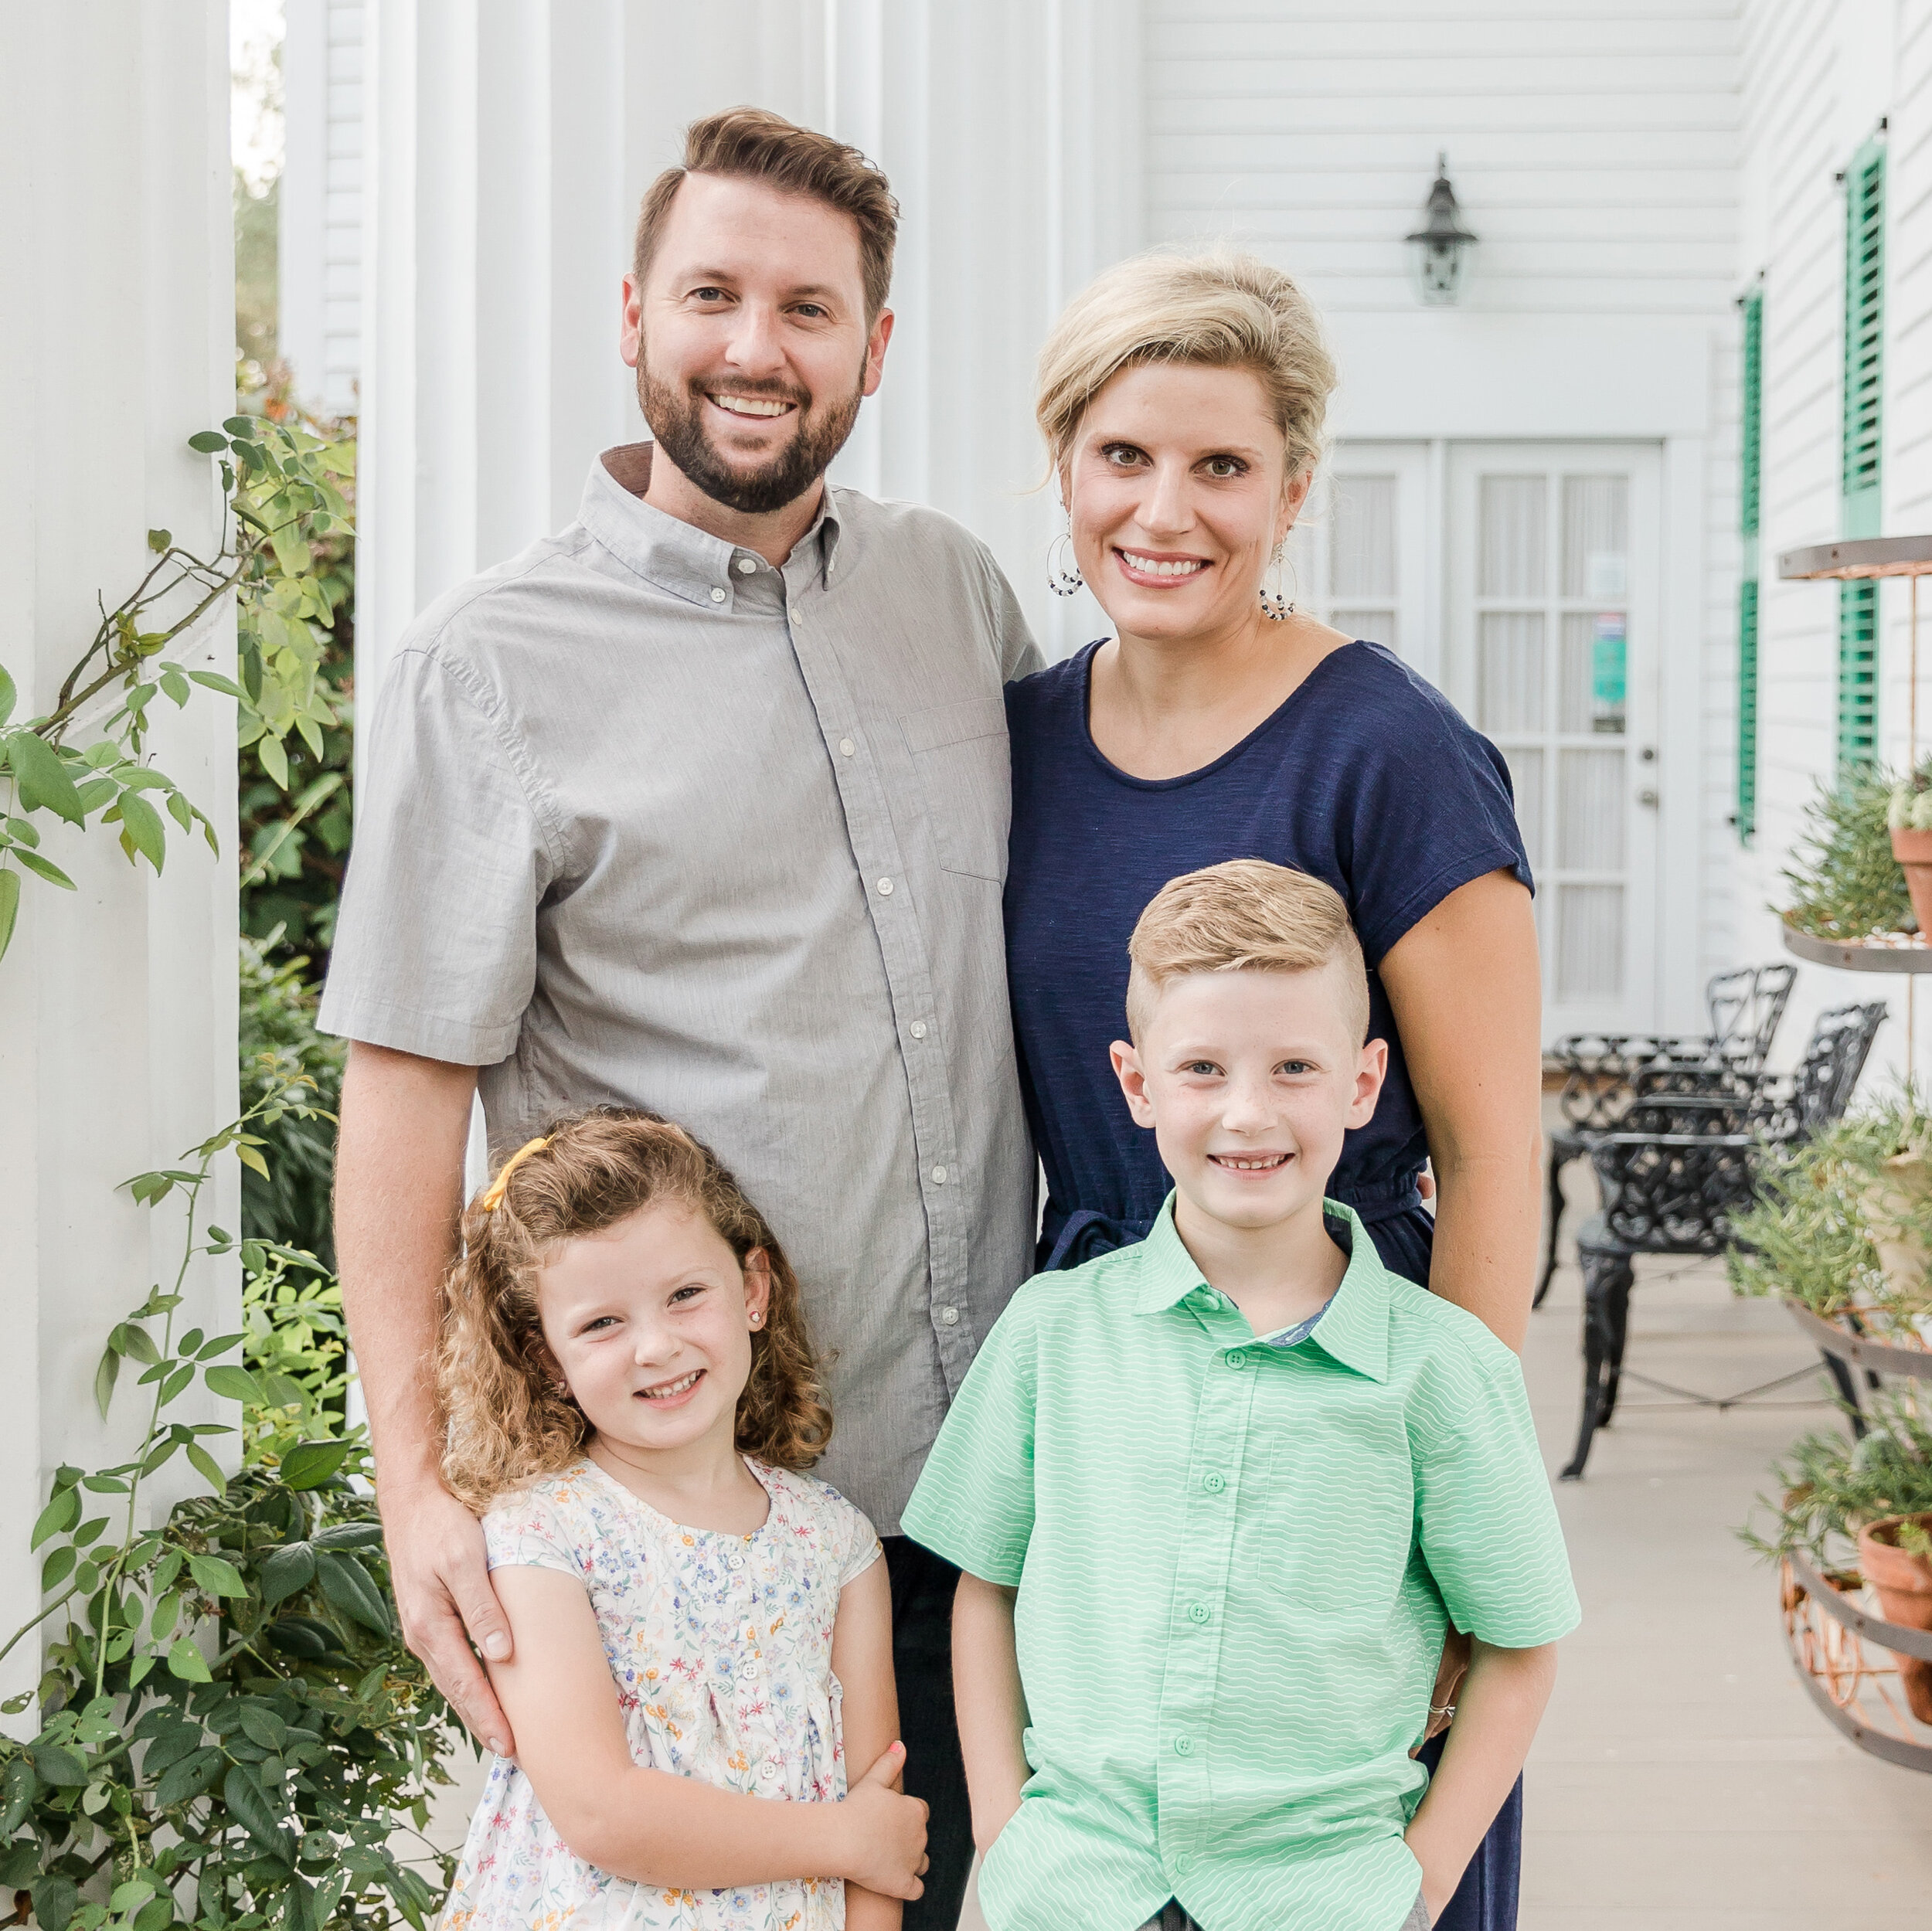 ERIC CONKRIGHT  LEADERSHIP PIPELINE Eric, his wife Kerry and their two kids live in Alpharetta where Eric works as an accountant.